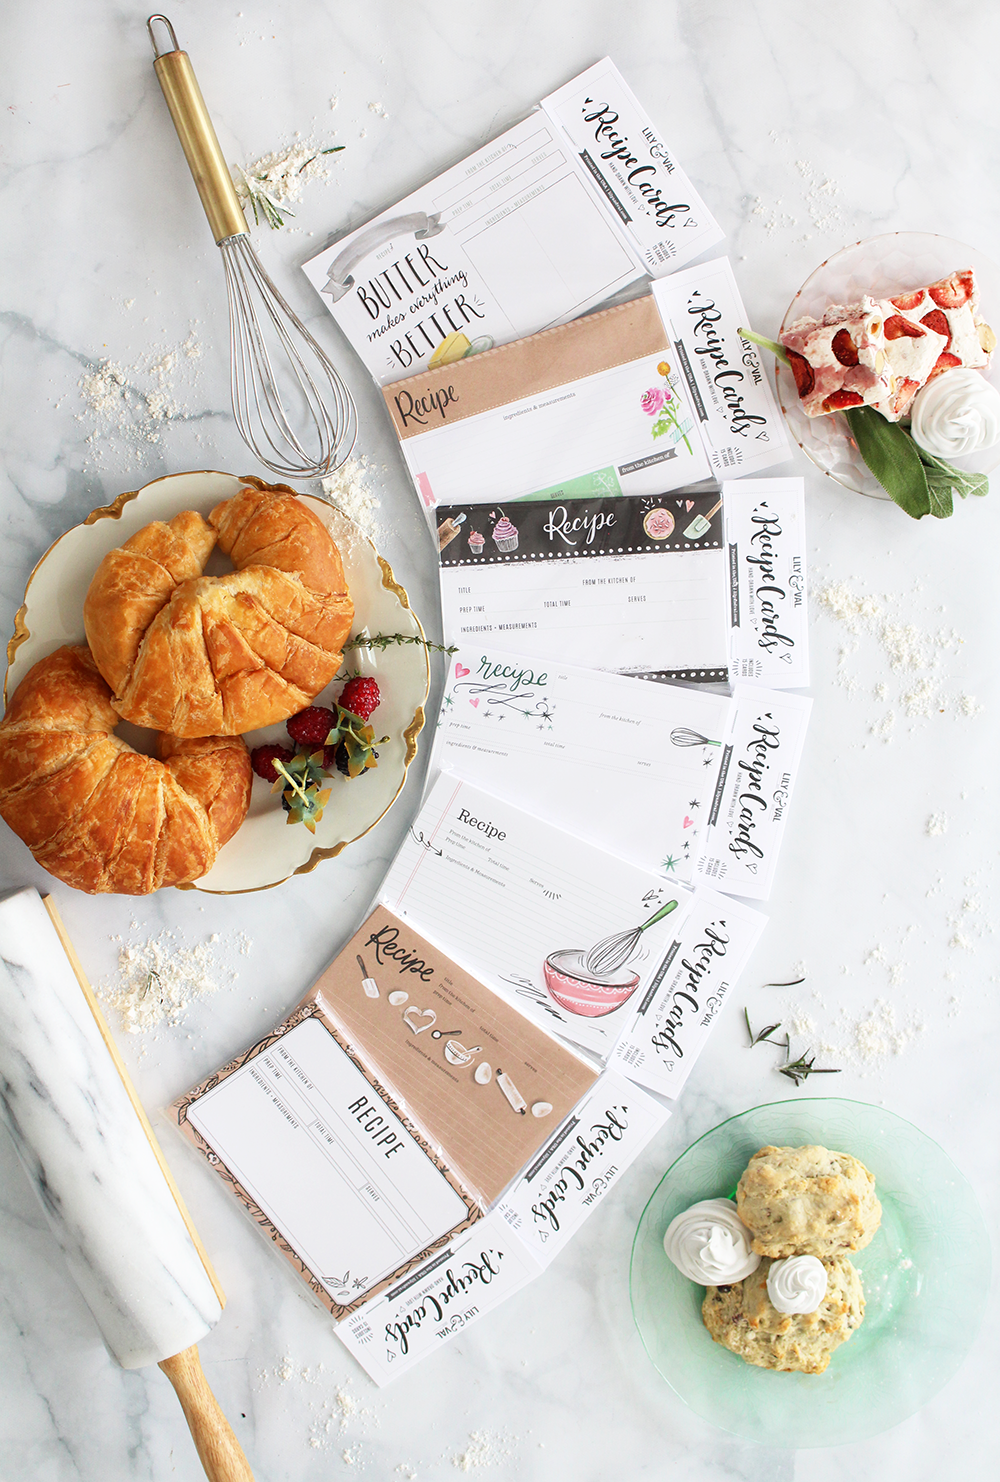 NEW Loose recipe cards by Lily & Val! 7 designs to choose from and they come in packs of 15!